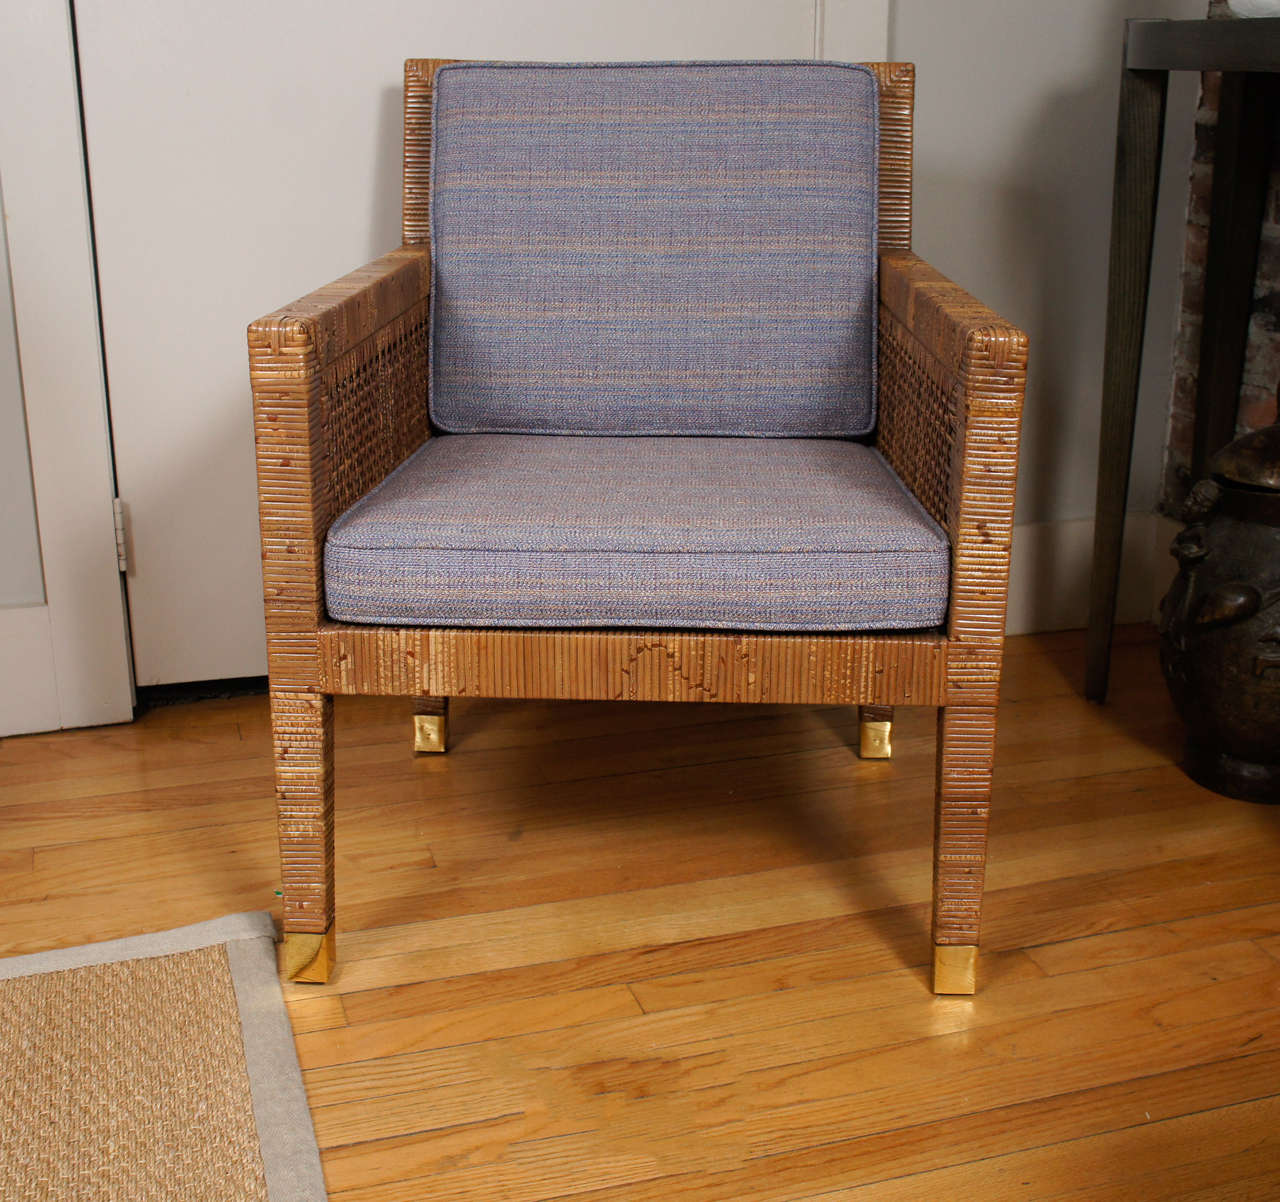 Rattan Chair Designed by Billy Baldwin at 1stdibs